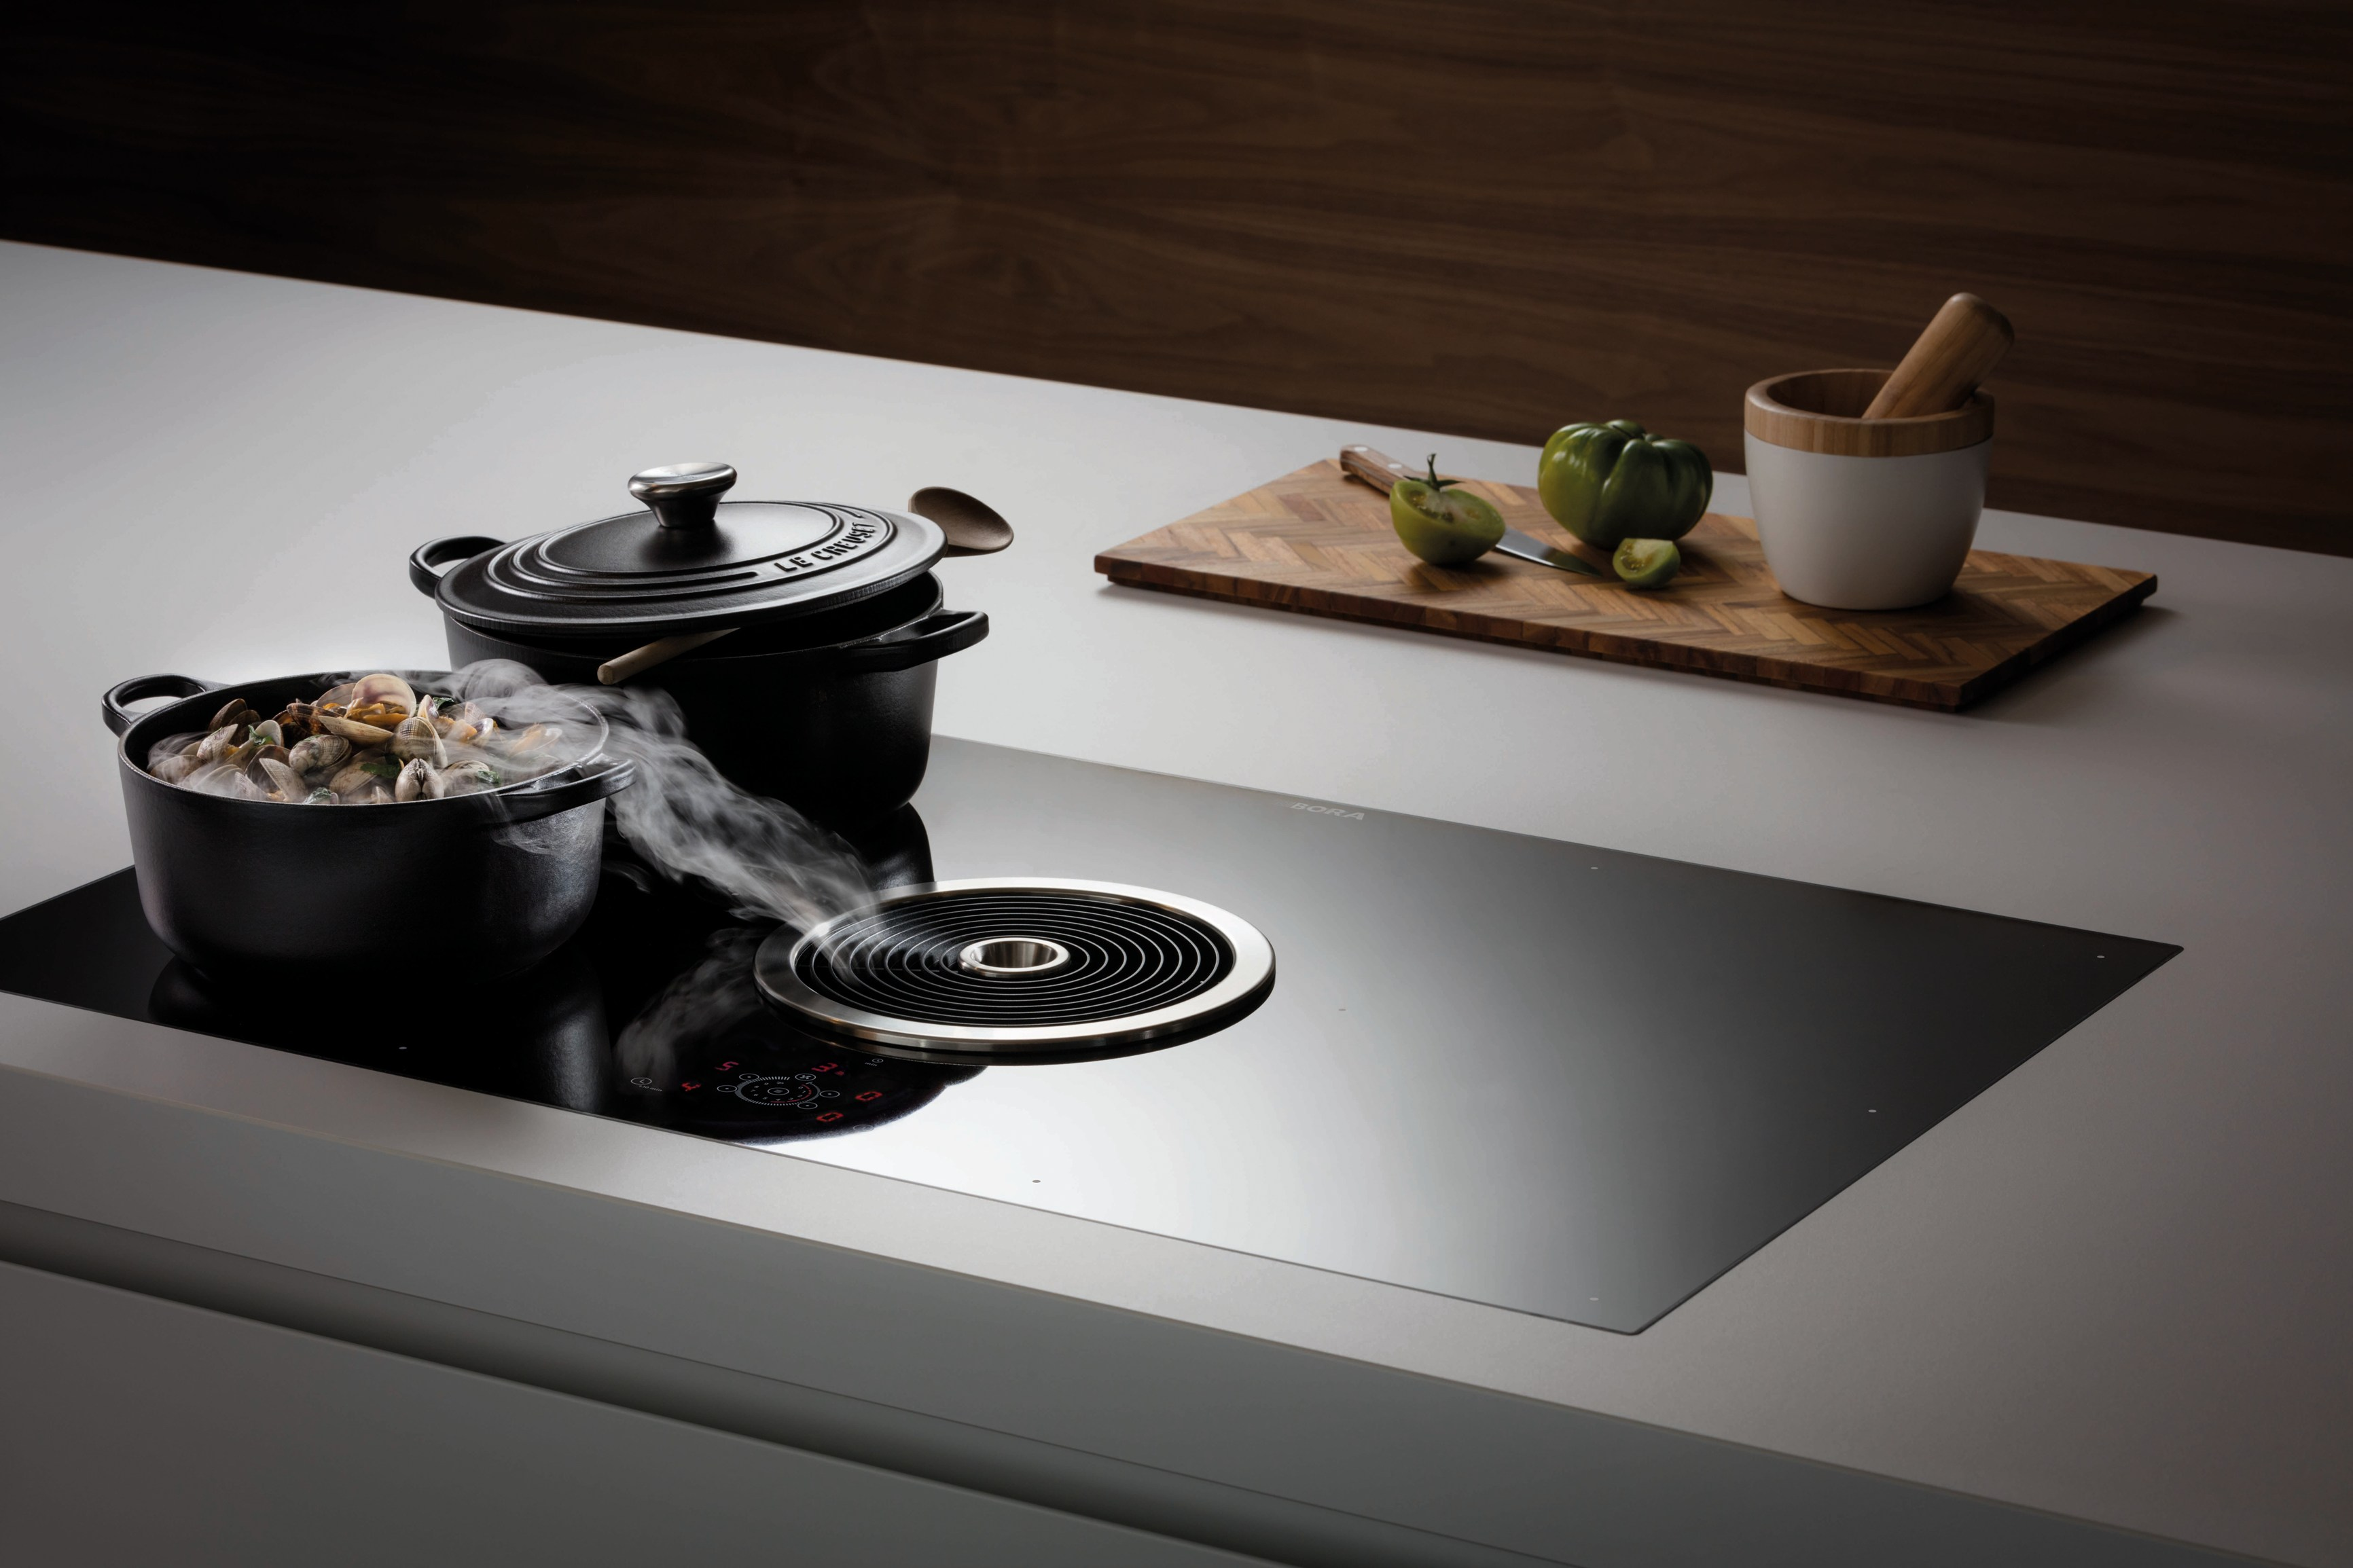 surface induction glass ceramic cooktop bfia bora basic line by bora. Black Bedroom Furniture Sets. Home Design Ideas